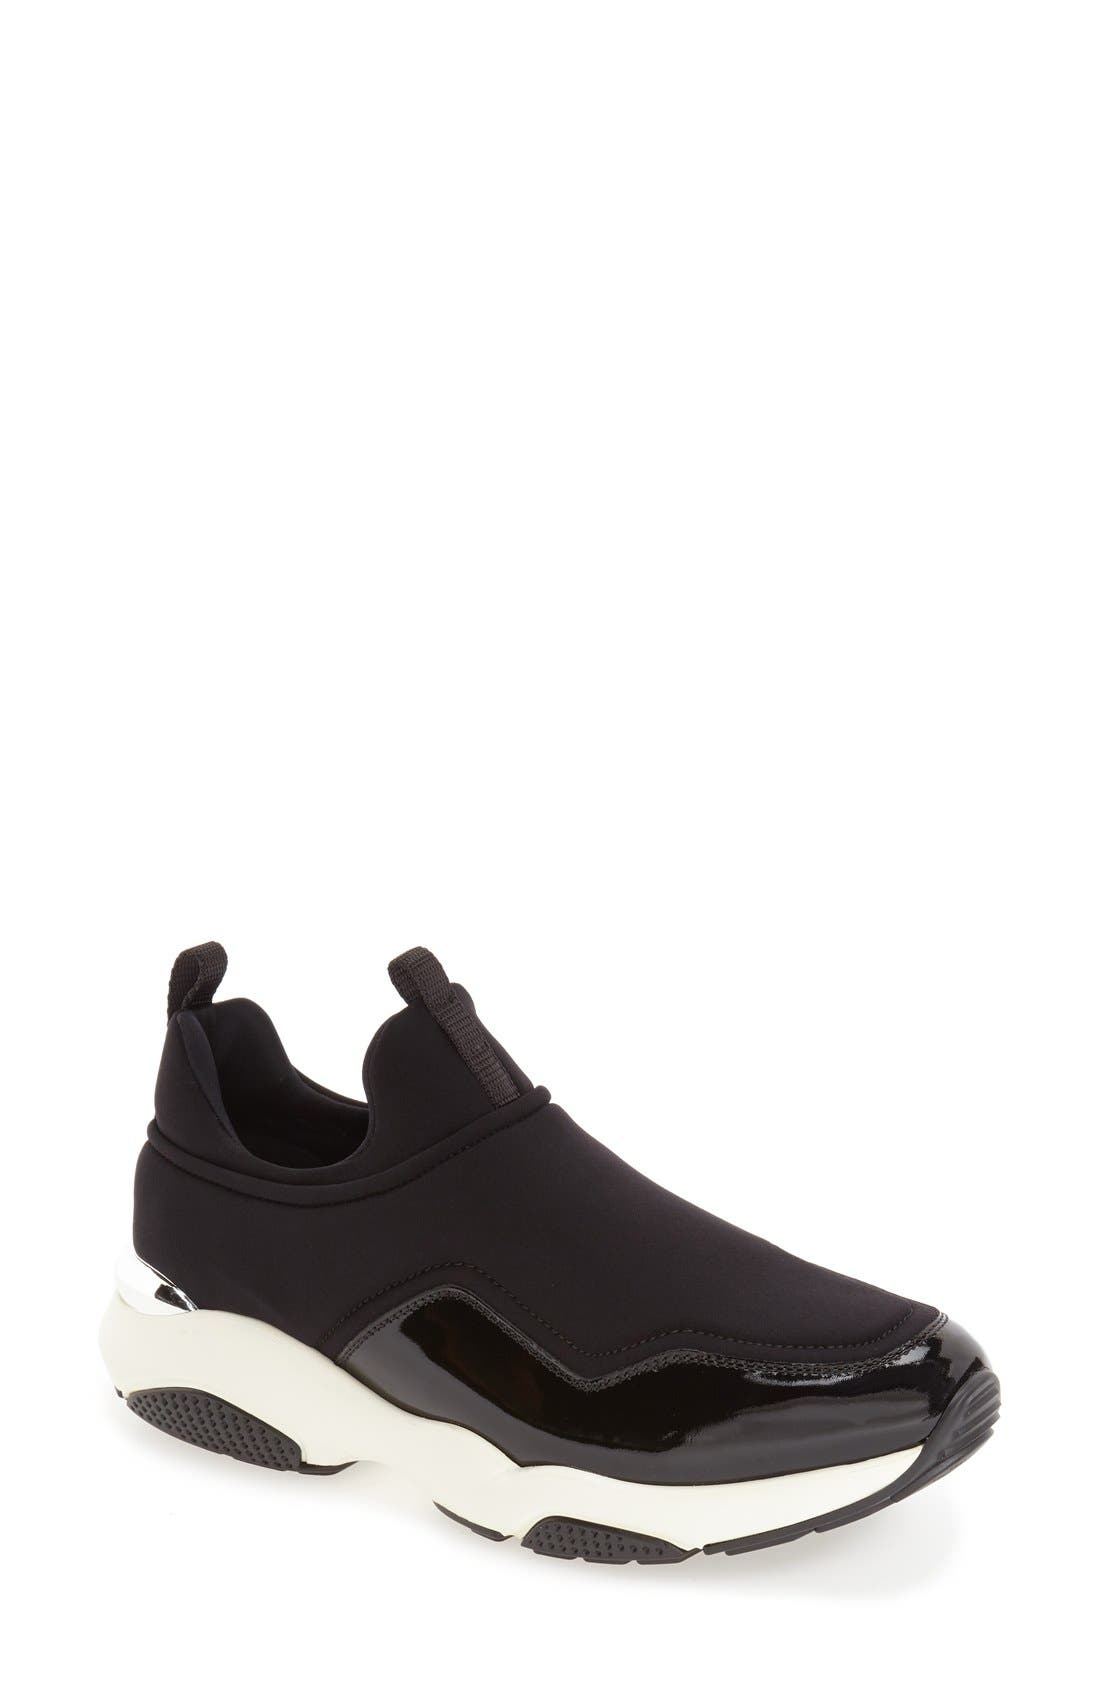 Alternate Image 1 Selected - Salvatore Ferragamo Skate Sneaker (Women)